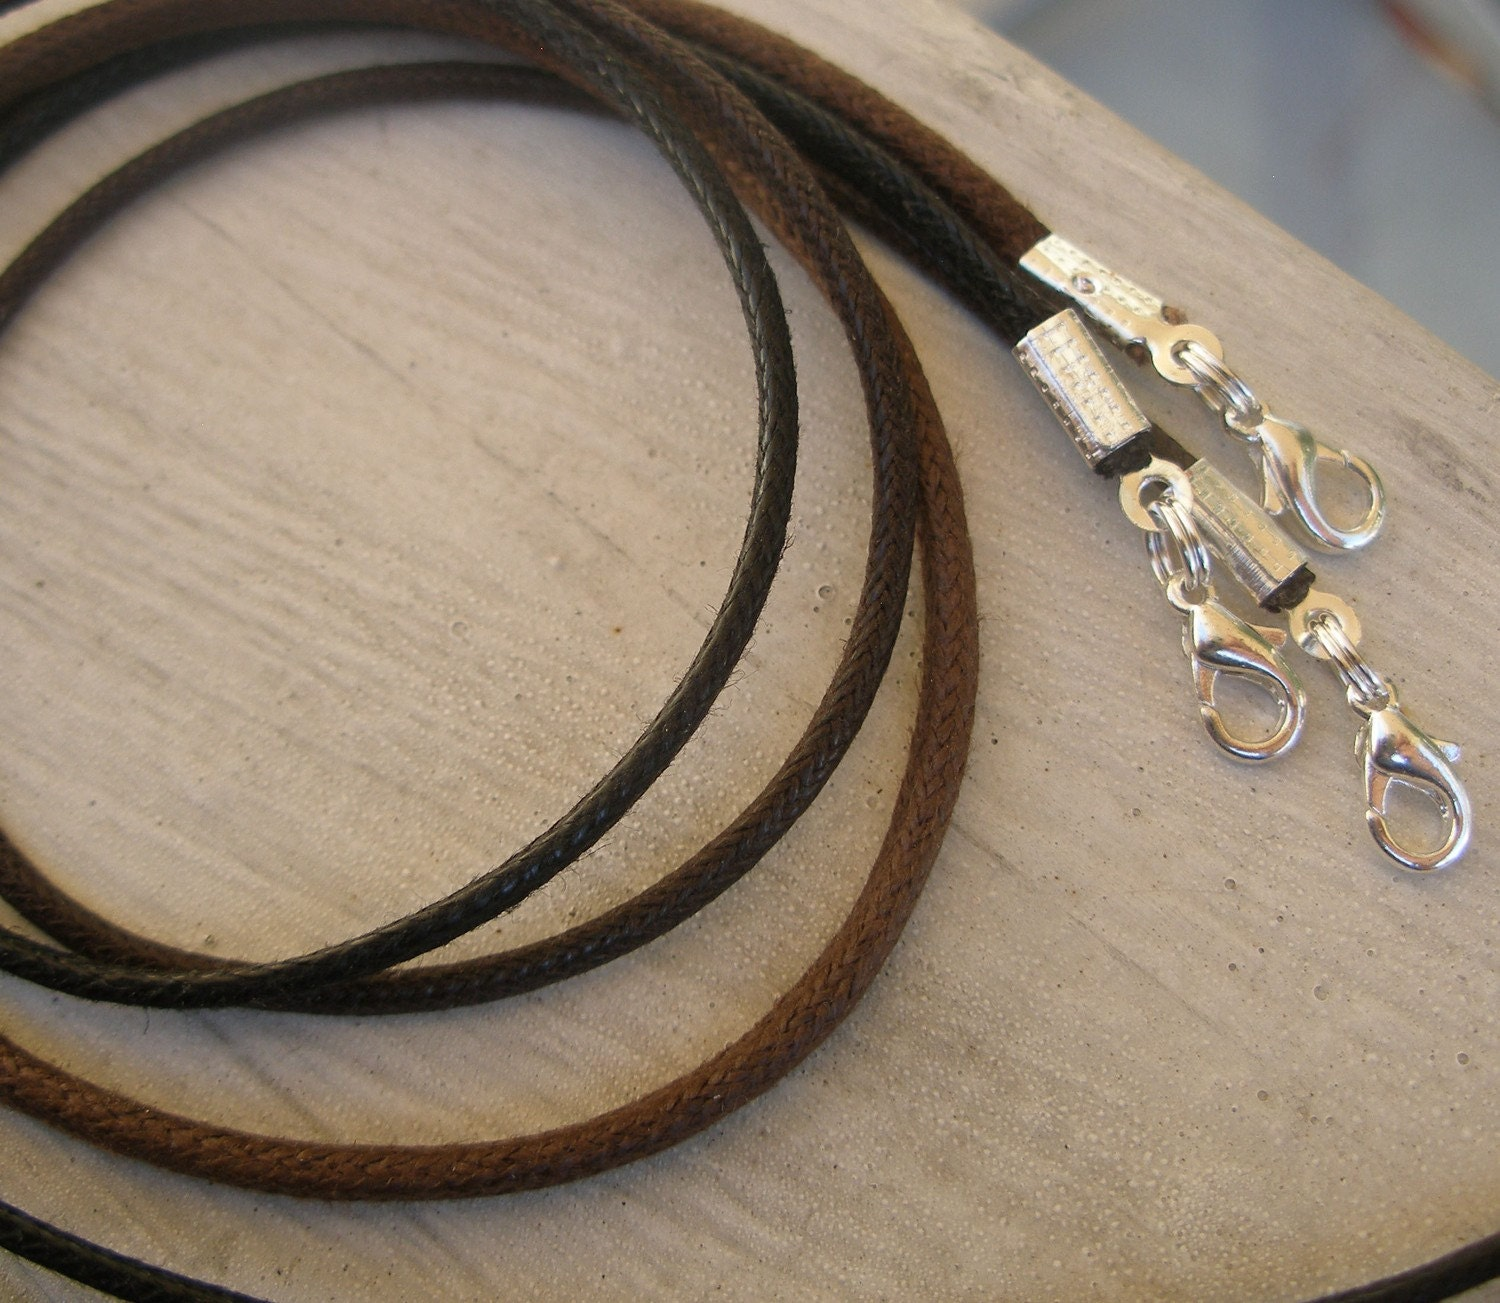 6 - Black or Brown Waxed Cotton Necklace Cords - Heavy Duty Any length - Use with Lg Pendants, Slider beads, Pandora or Lg Bails